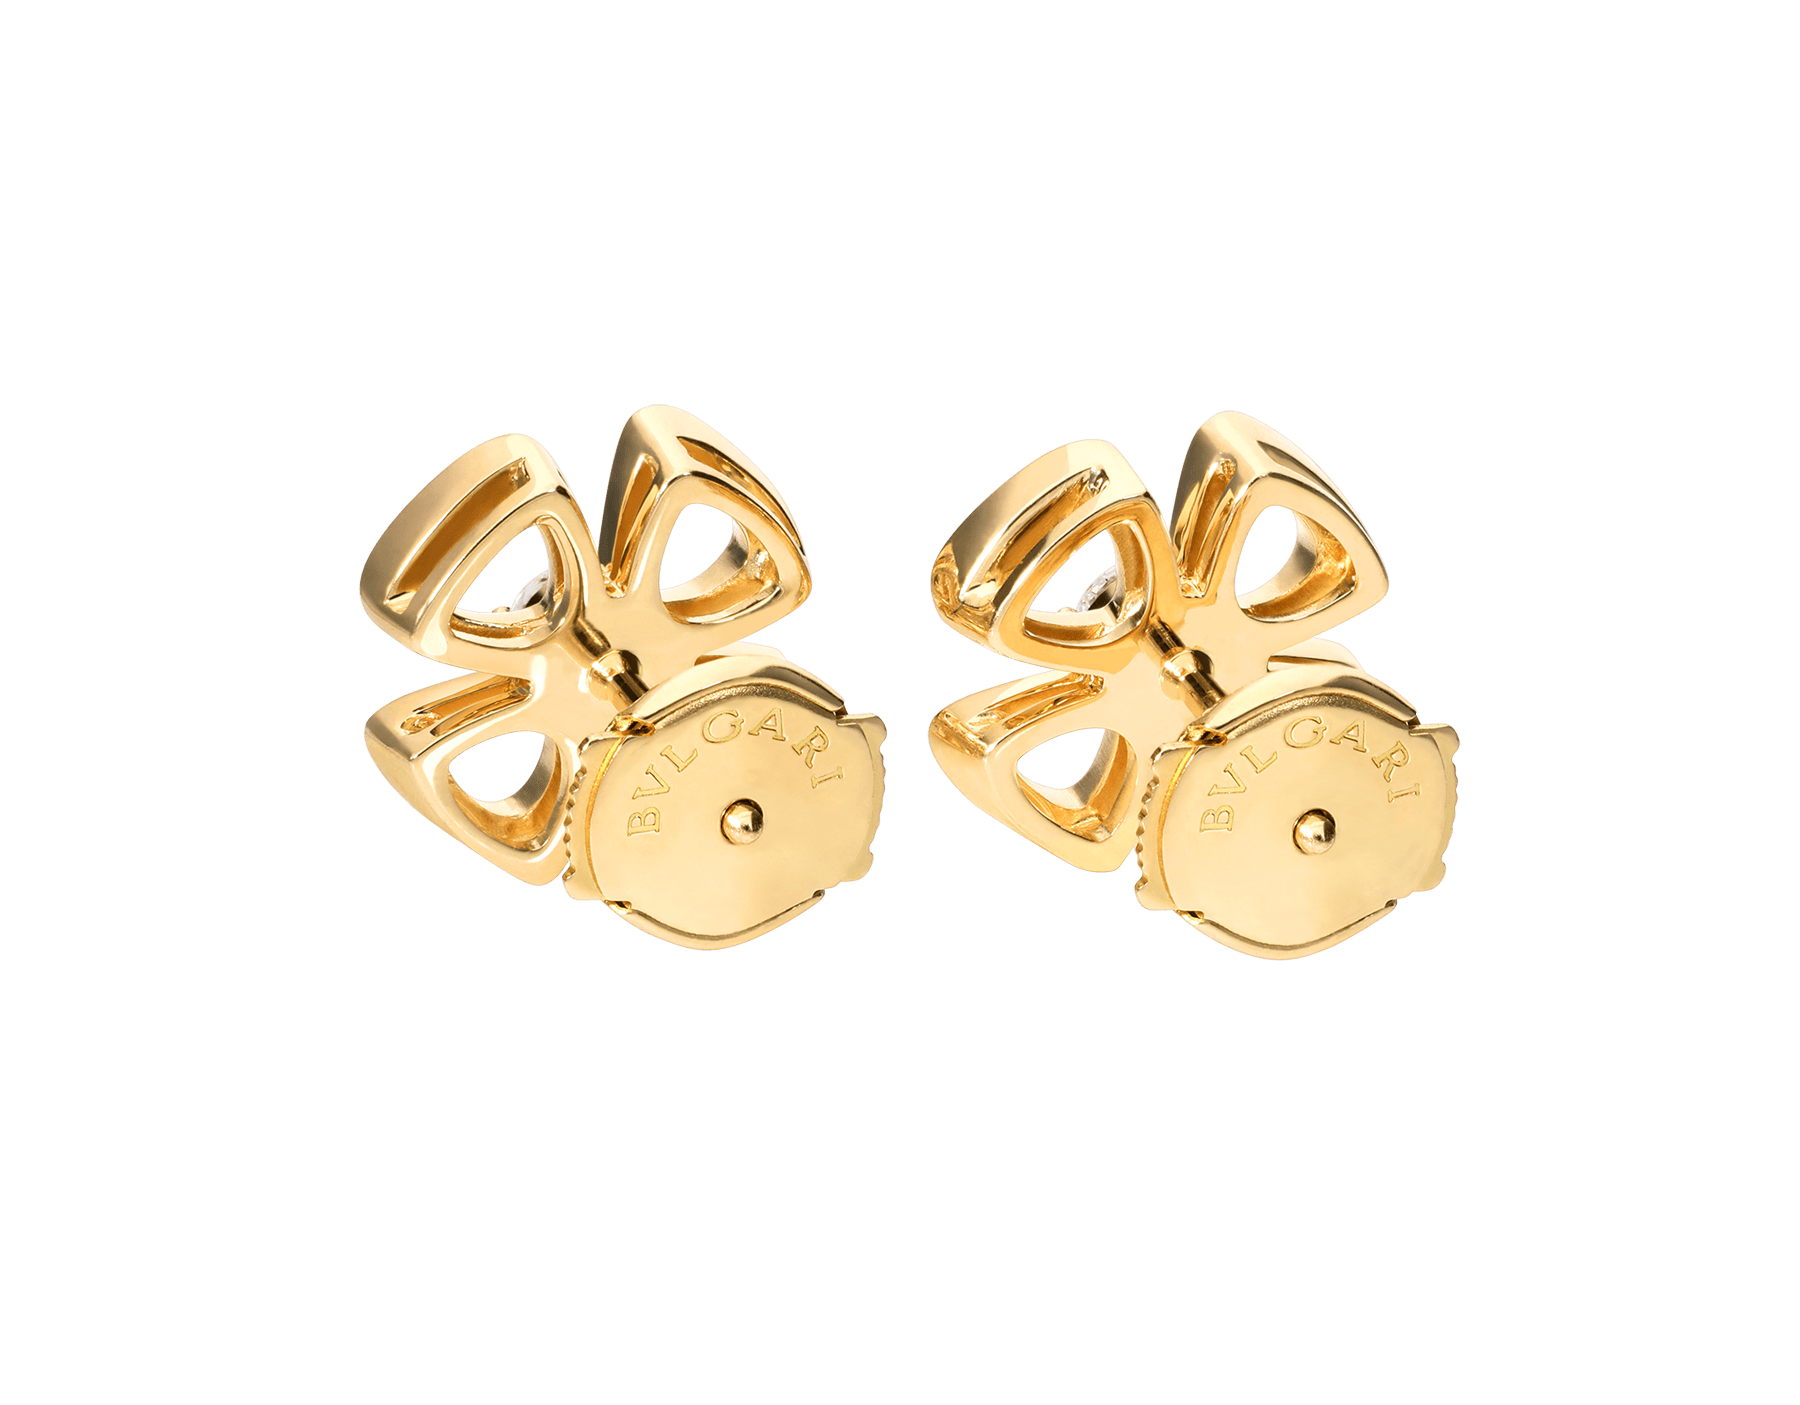 Fiorever 18 kt yellow gold stud earrings set with two central diamonds (0.10 ct each) 357503 image 3